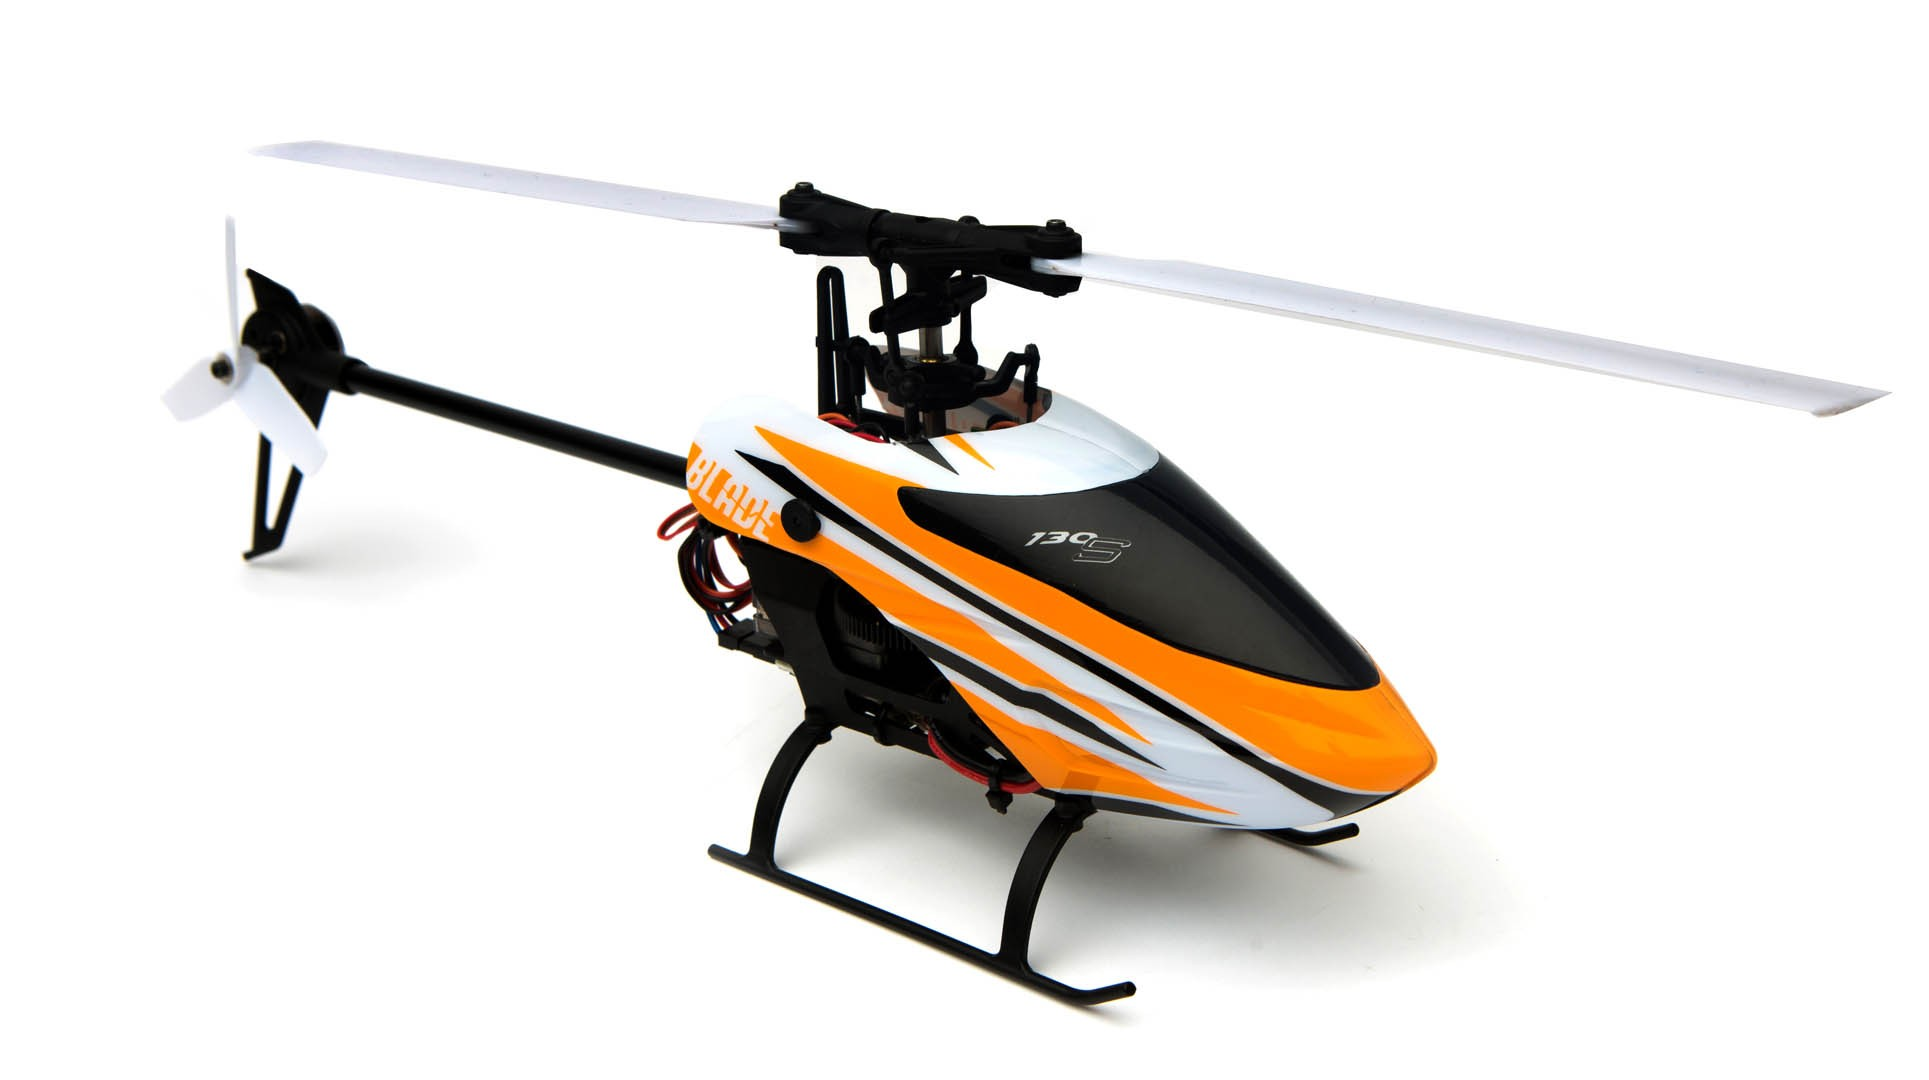 rtf scale rc helicopter with Blade 130 S Rtf With Safe Blh9300eu on 96493229 also Flyzone Dhc 2 Beaver Rc Aircraft Rtf also 1 24 Iveco Stralis Yellow Devil 510003898 En furthermore Showthread also Big Drones Toy.